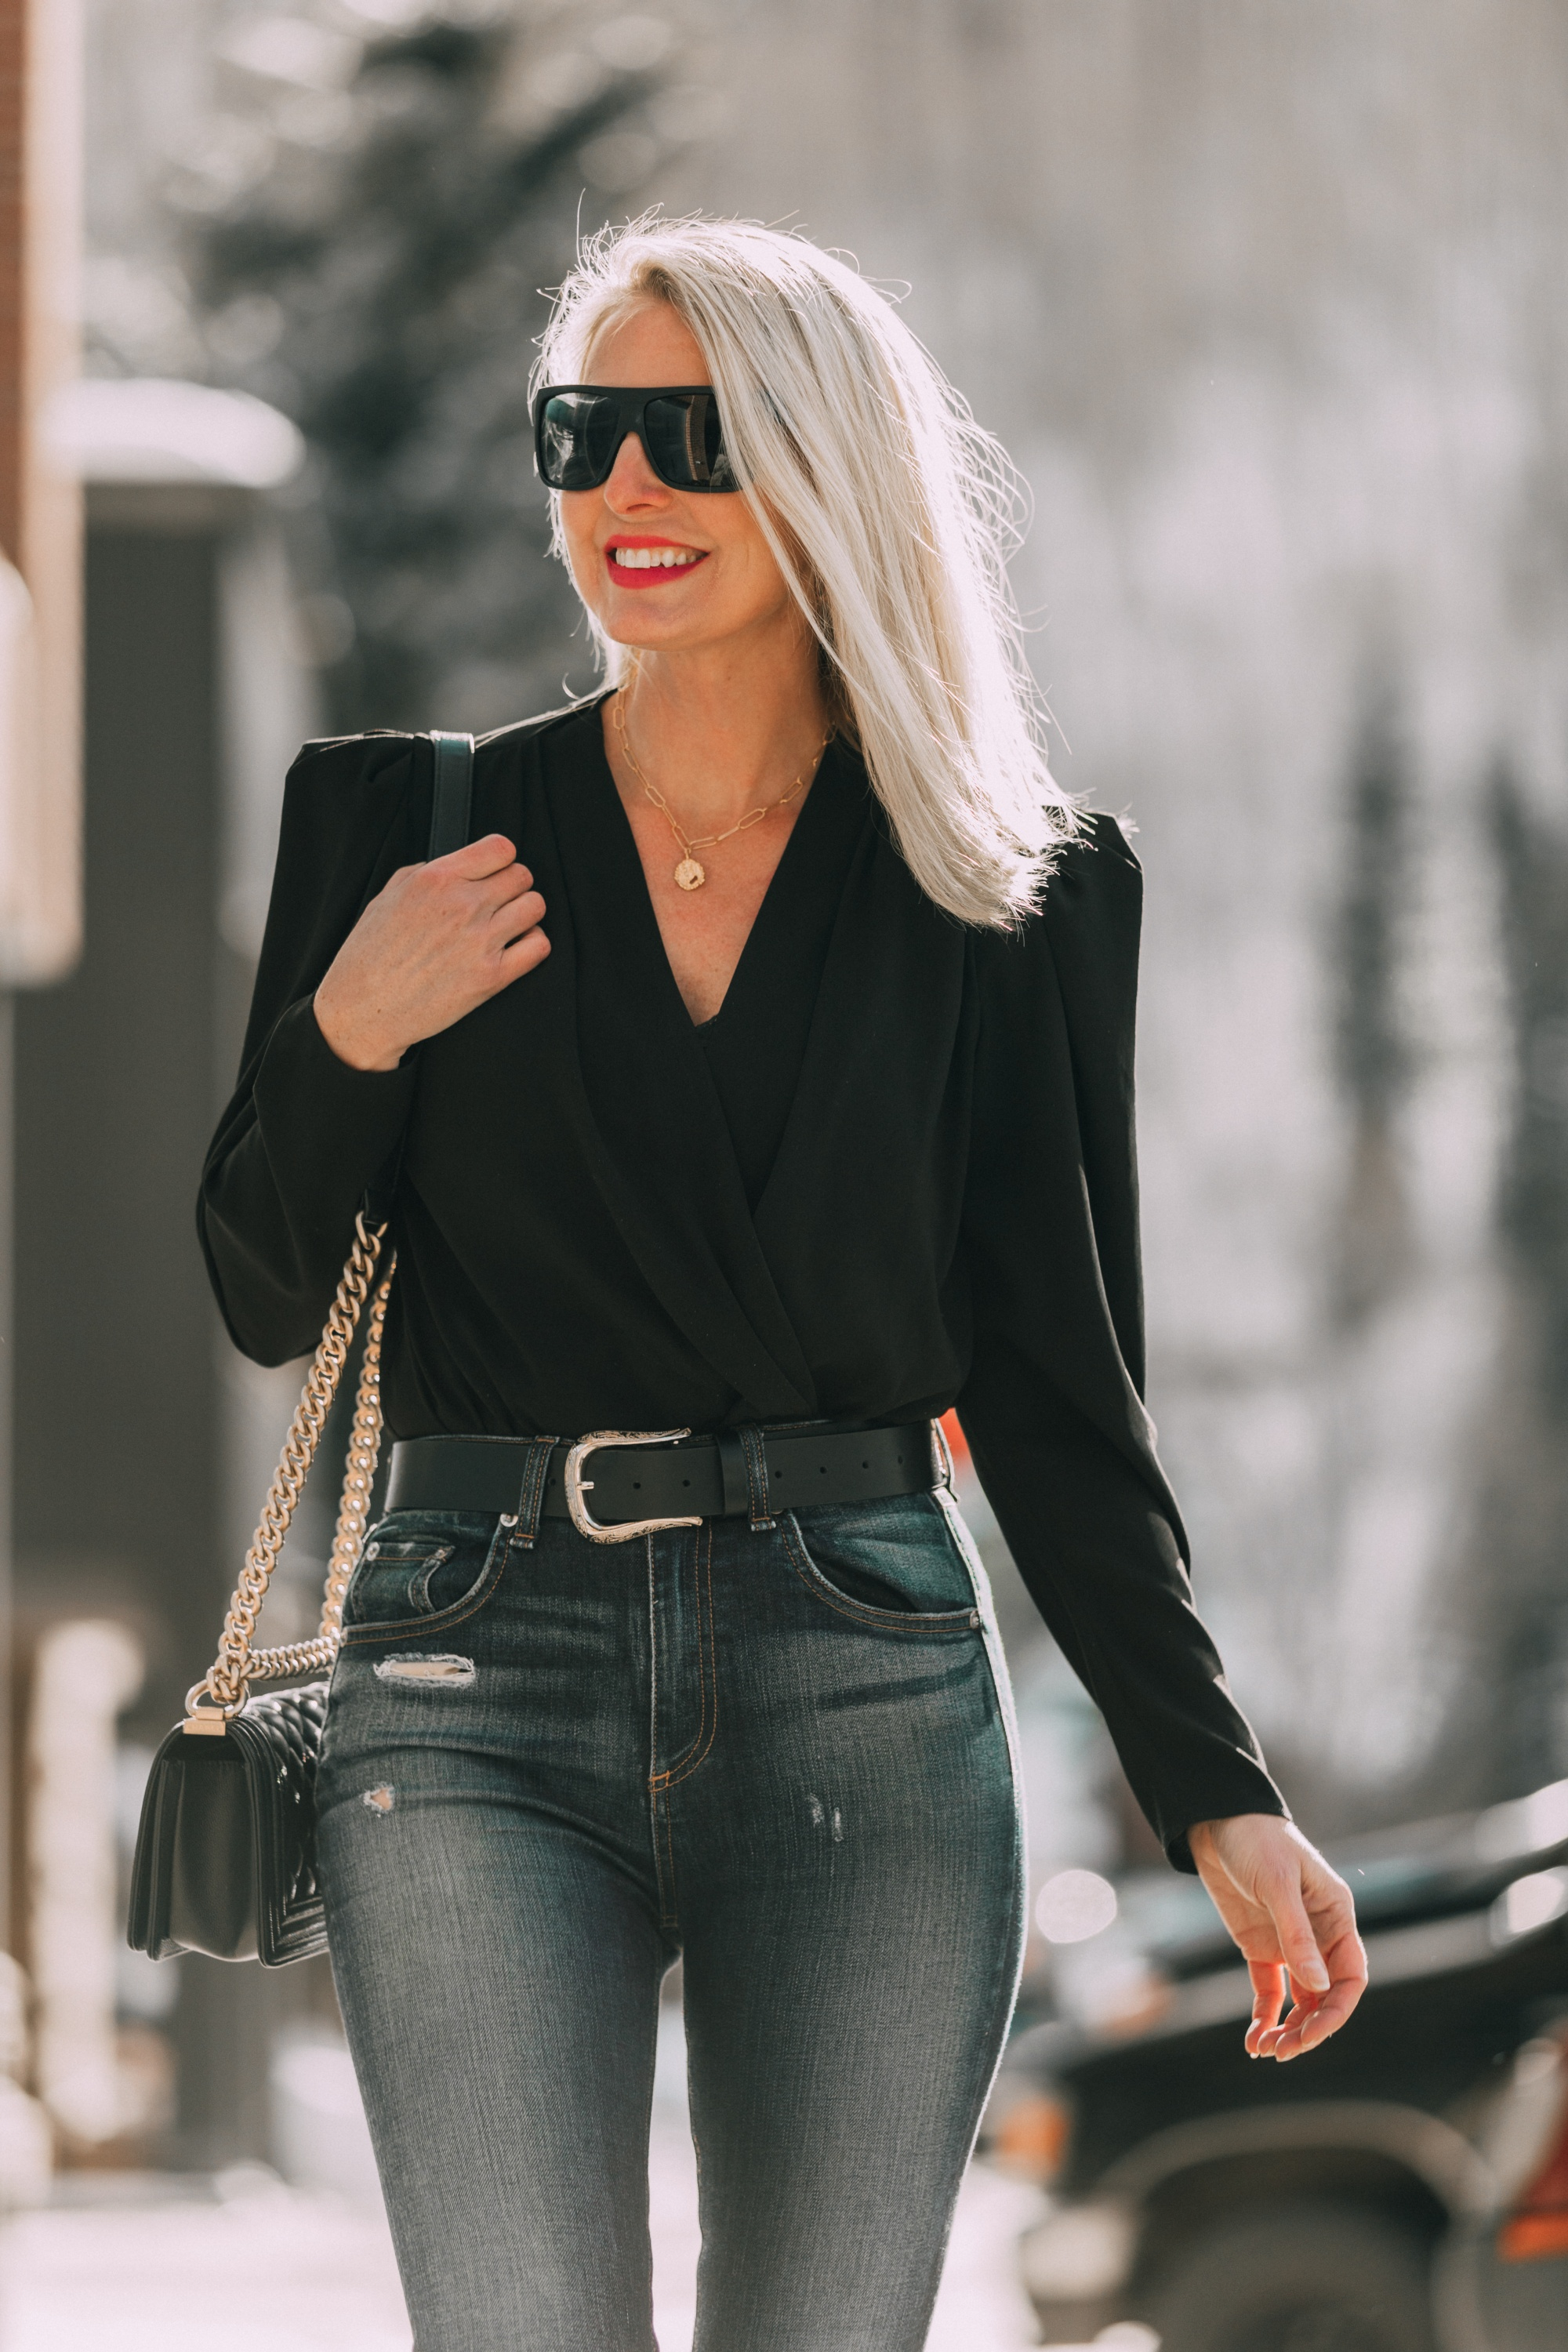 Women's fashion blogger, Erin Busbee shares 13 style hacks for women over 40 who love fashion. Here, she wears double sided fashion body tape.